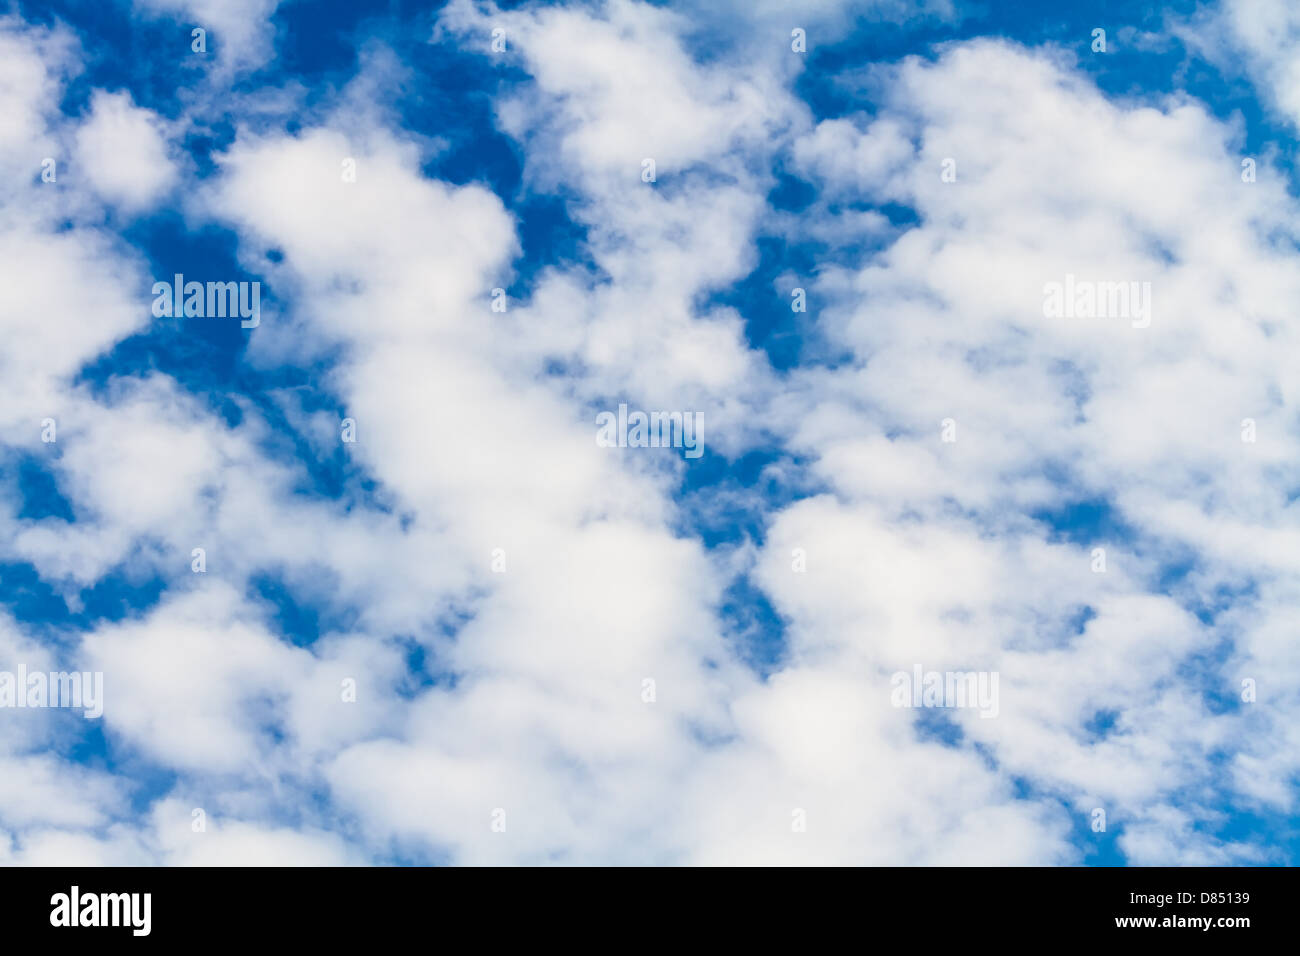 Puffy white clouds against a perfect blue sky. - Stock Image